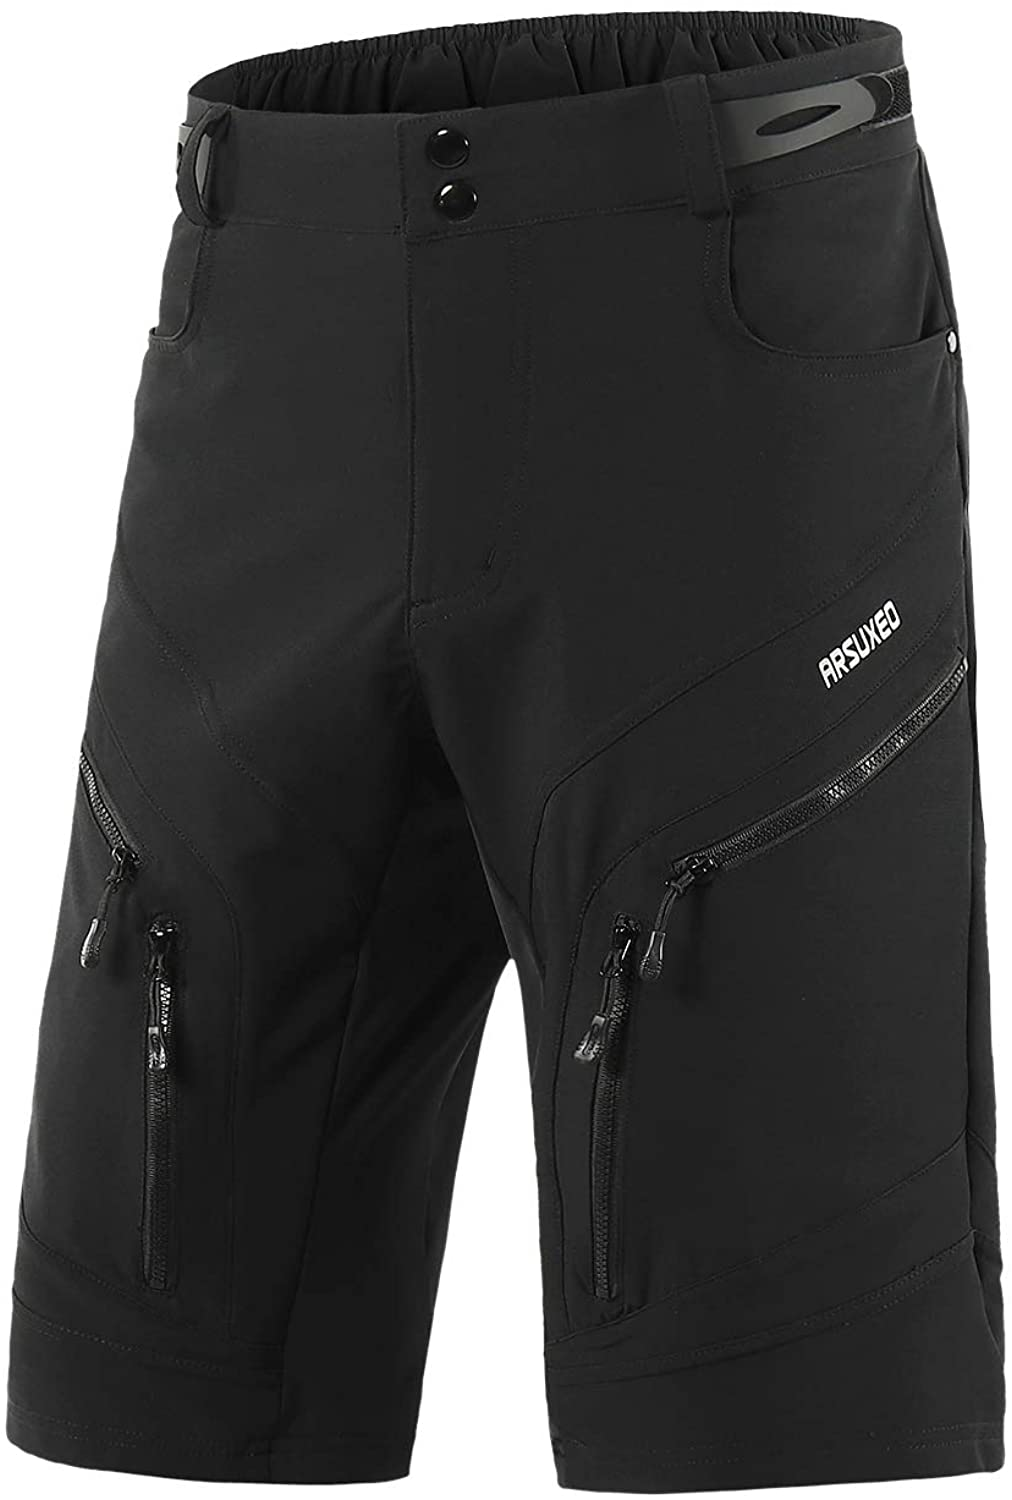 Men's Loose Fit Cycling Shorts MTB Bike Shorts